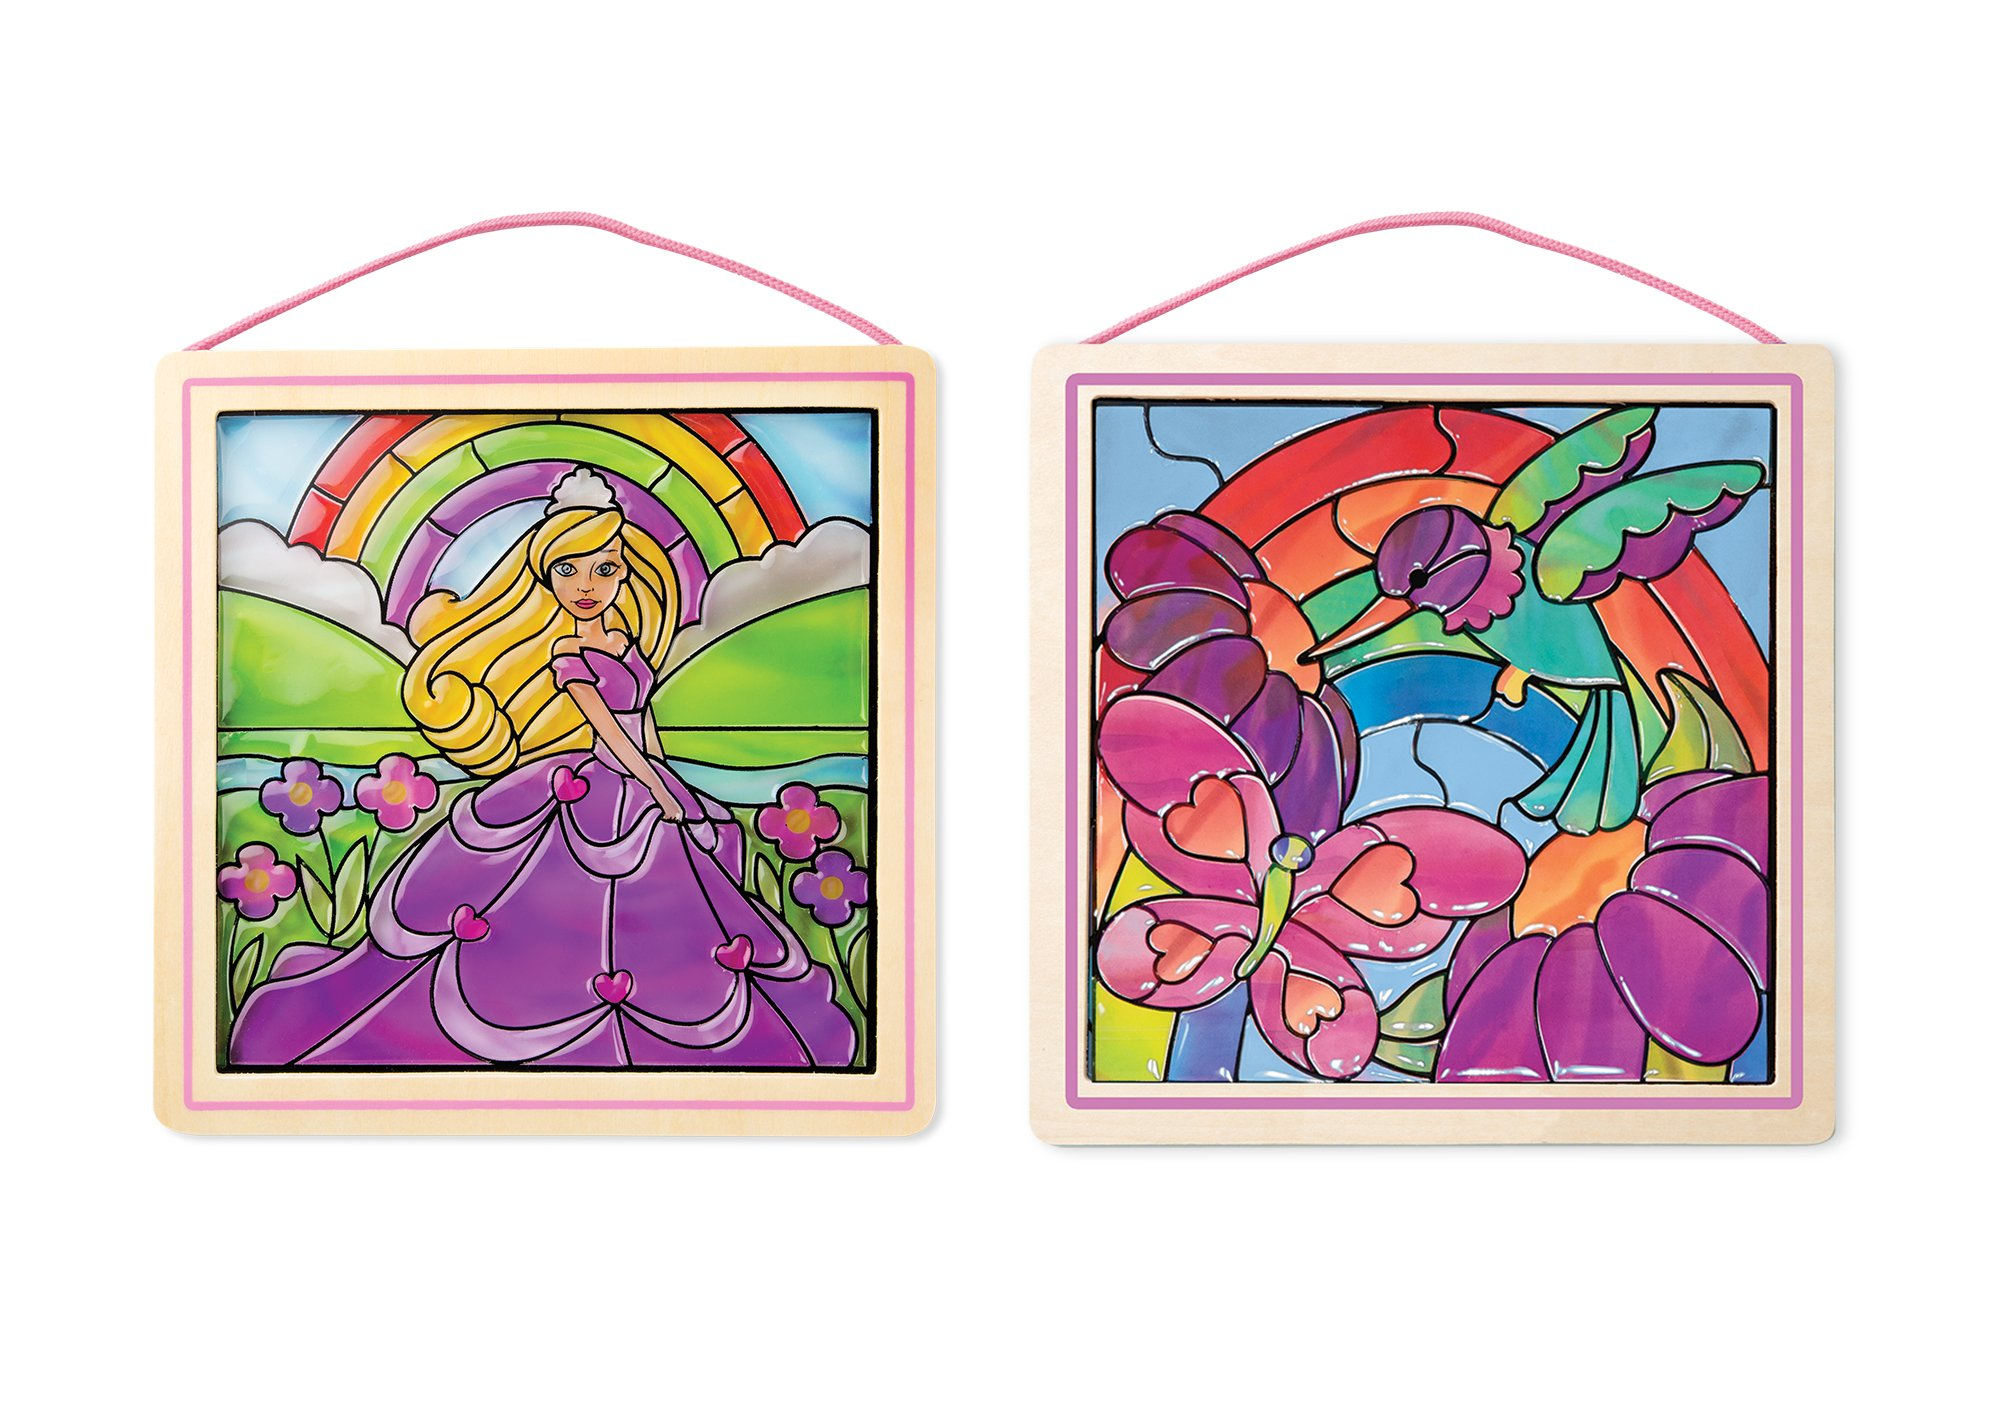 Melissa & Doug Stained Glass Made Easy Activity Kits Set - Rainbow Garden and Princess